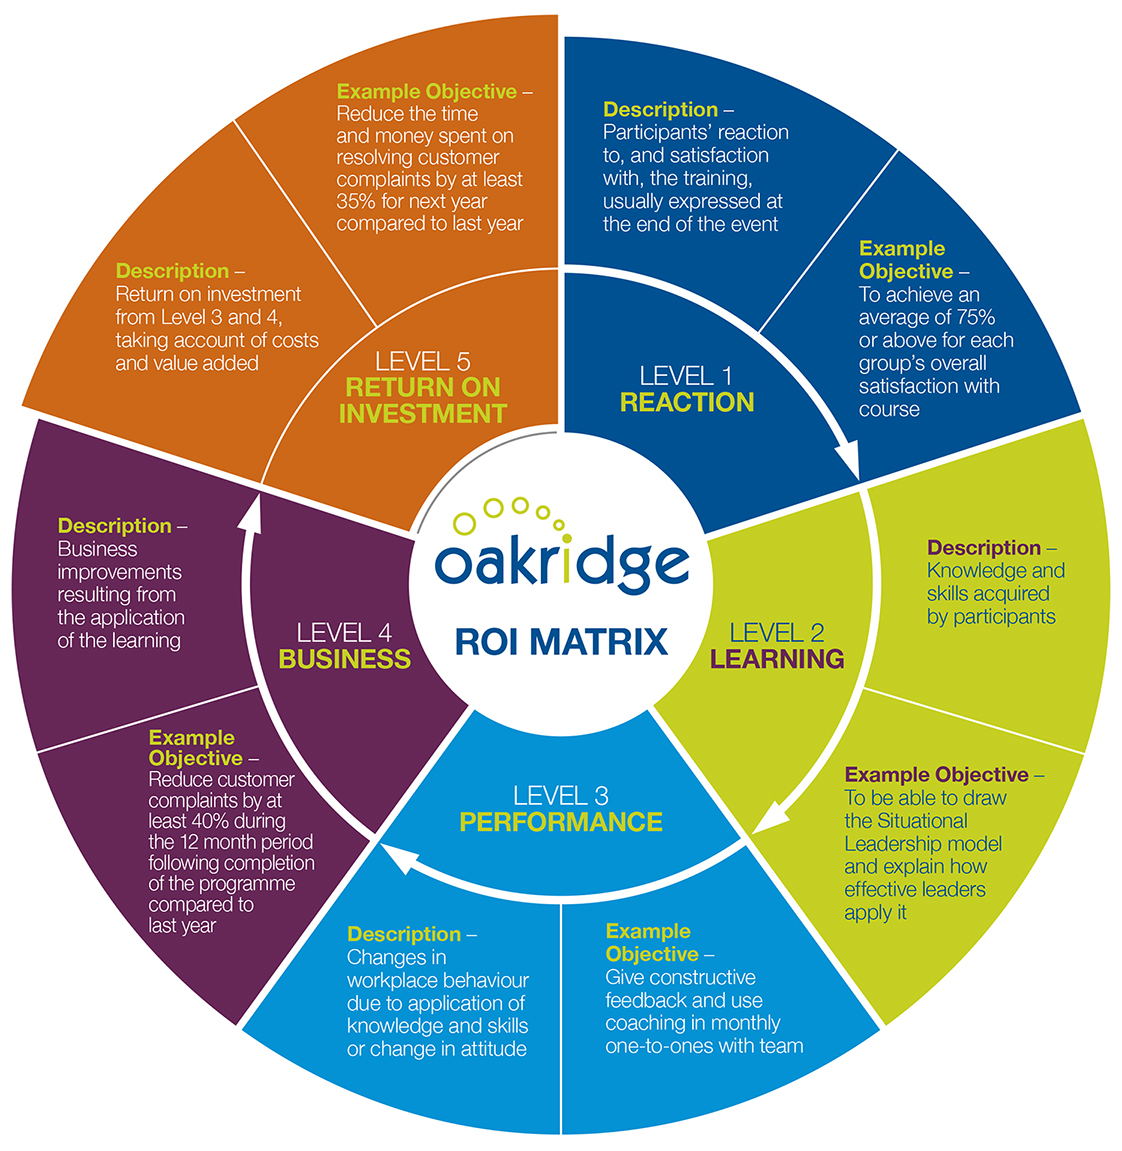 Oakridge's ROI MATRIX